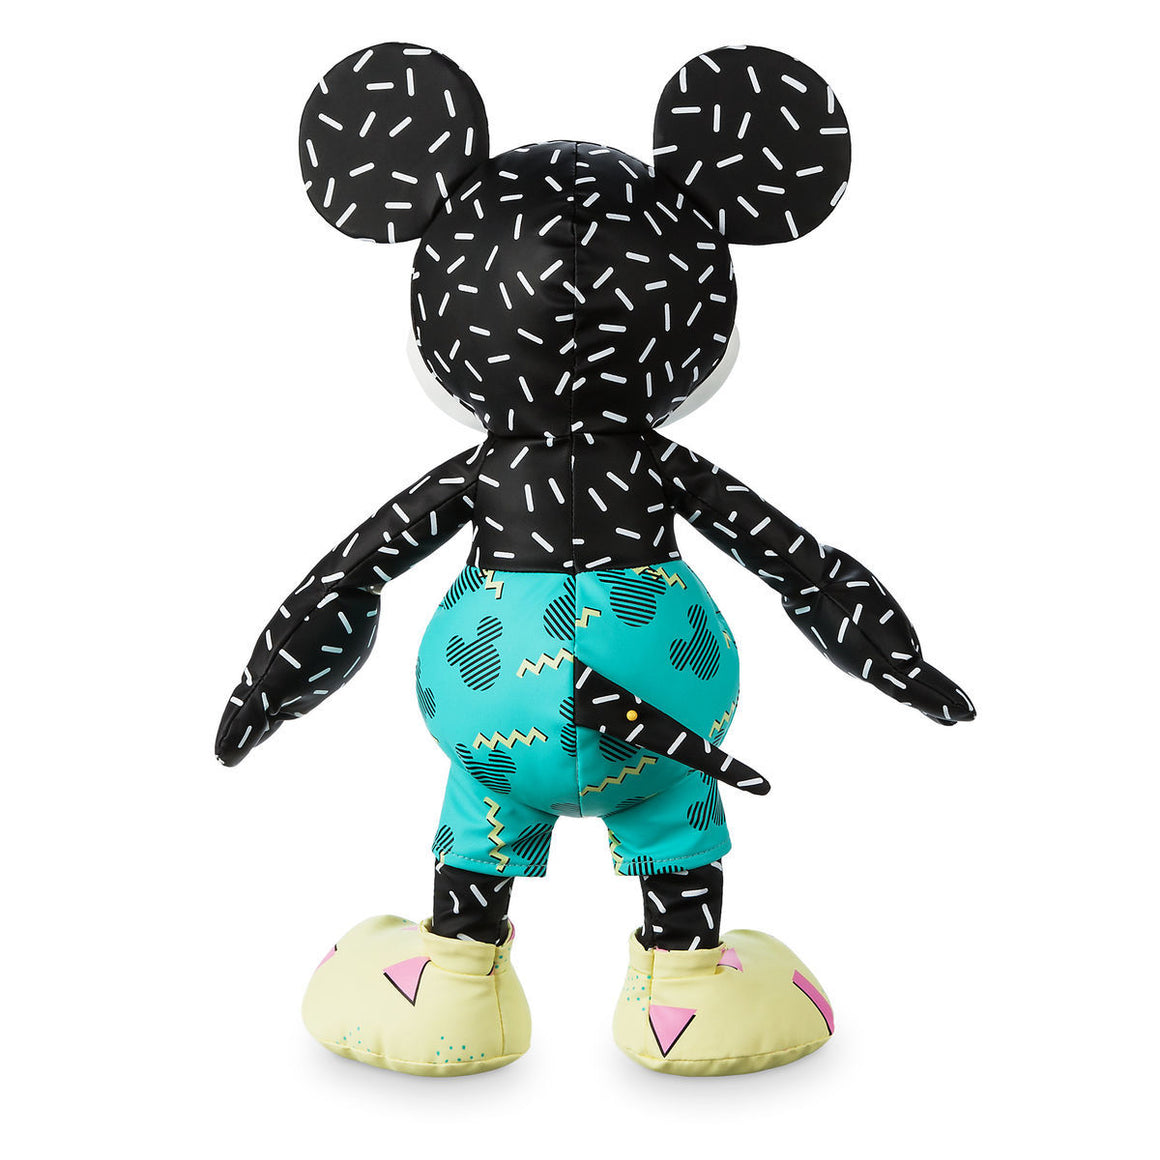 Mickey Mouse Memories Plush - September 2018 - Limited Edition